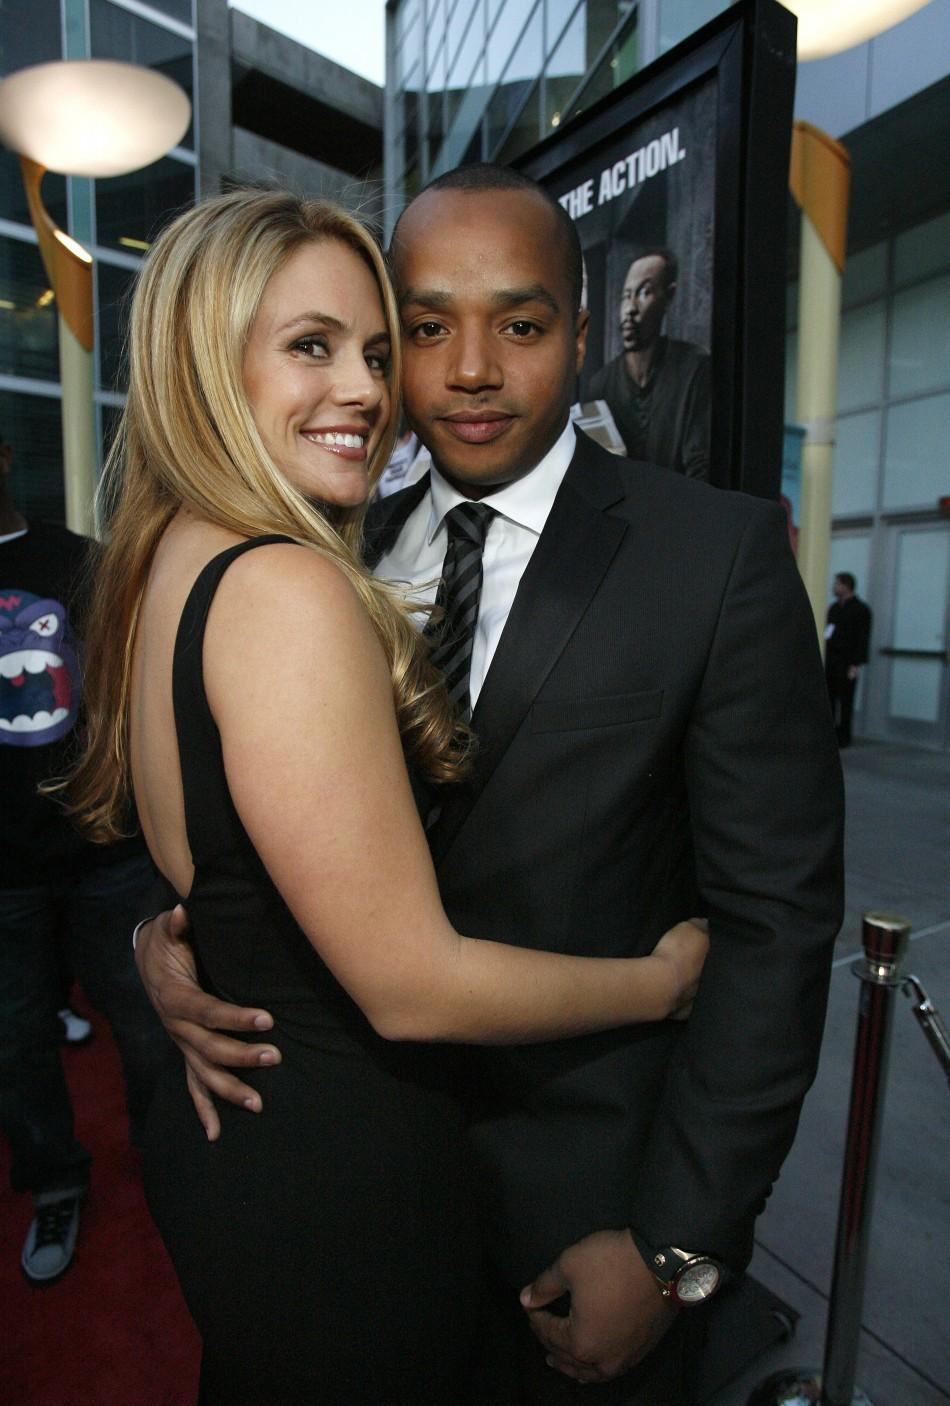 Donald Faison and CacCee Cobb